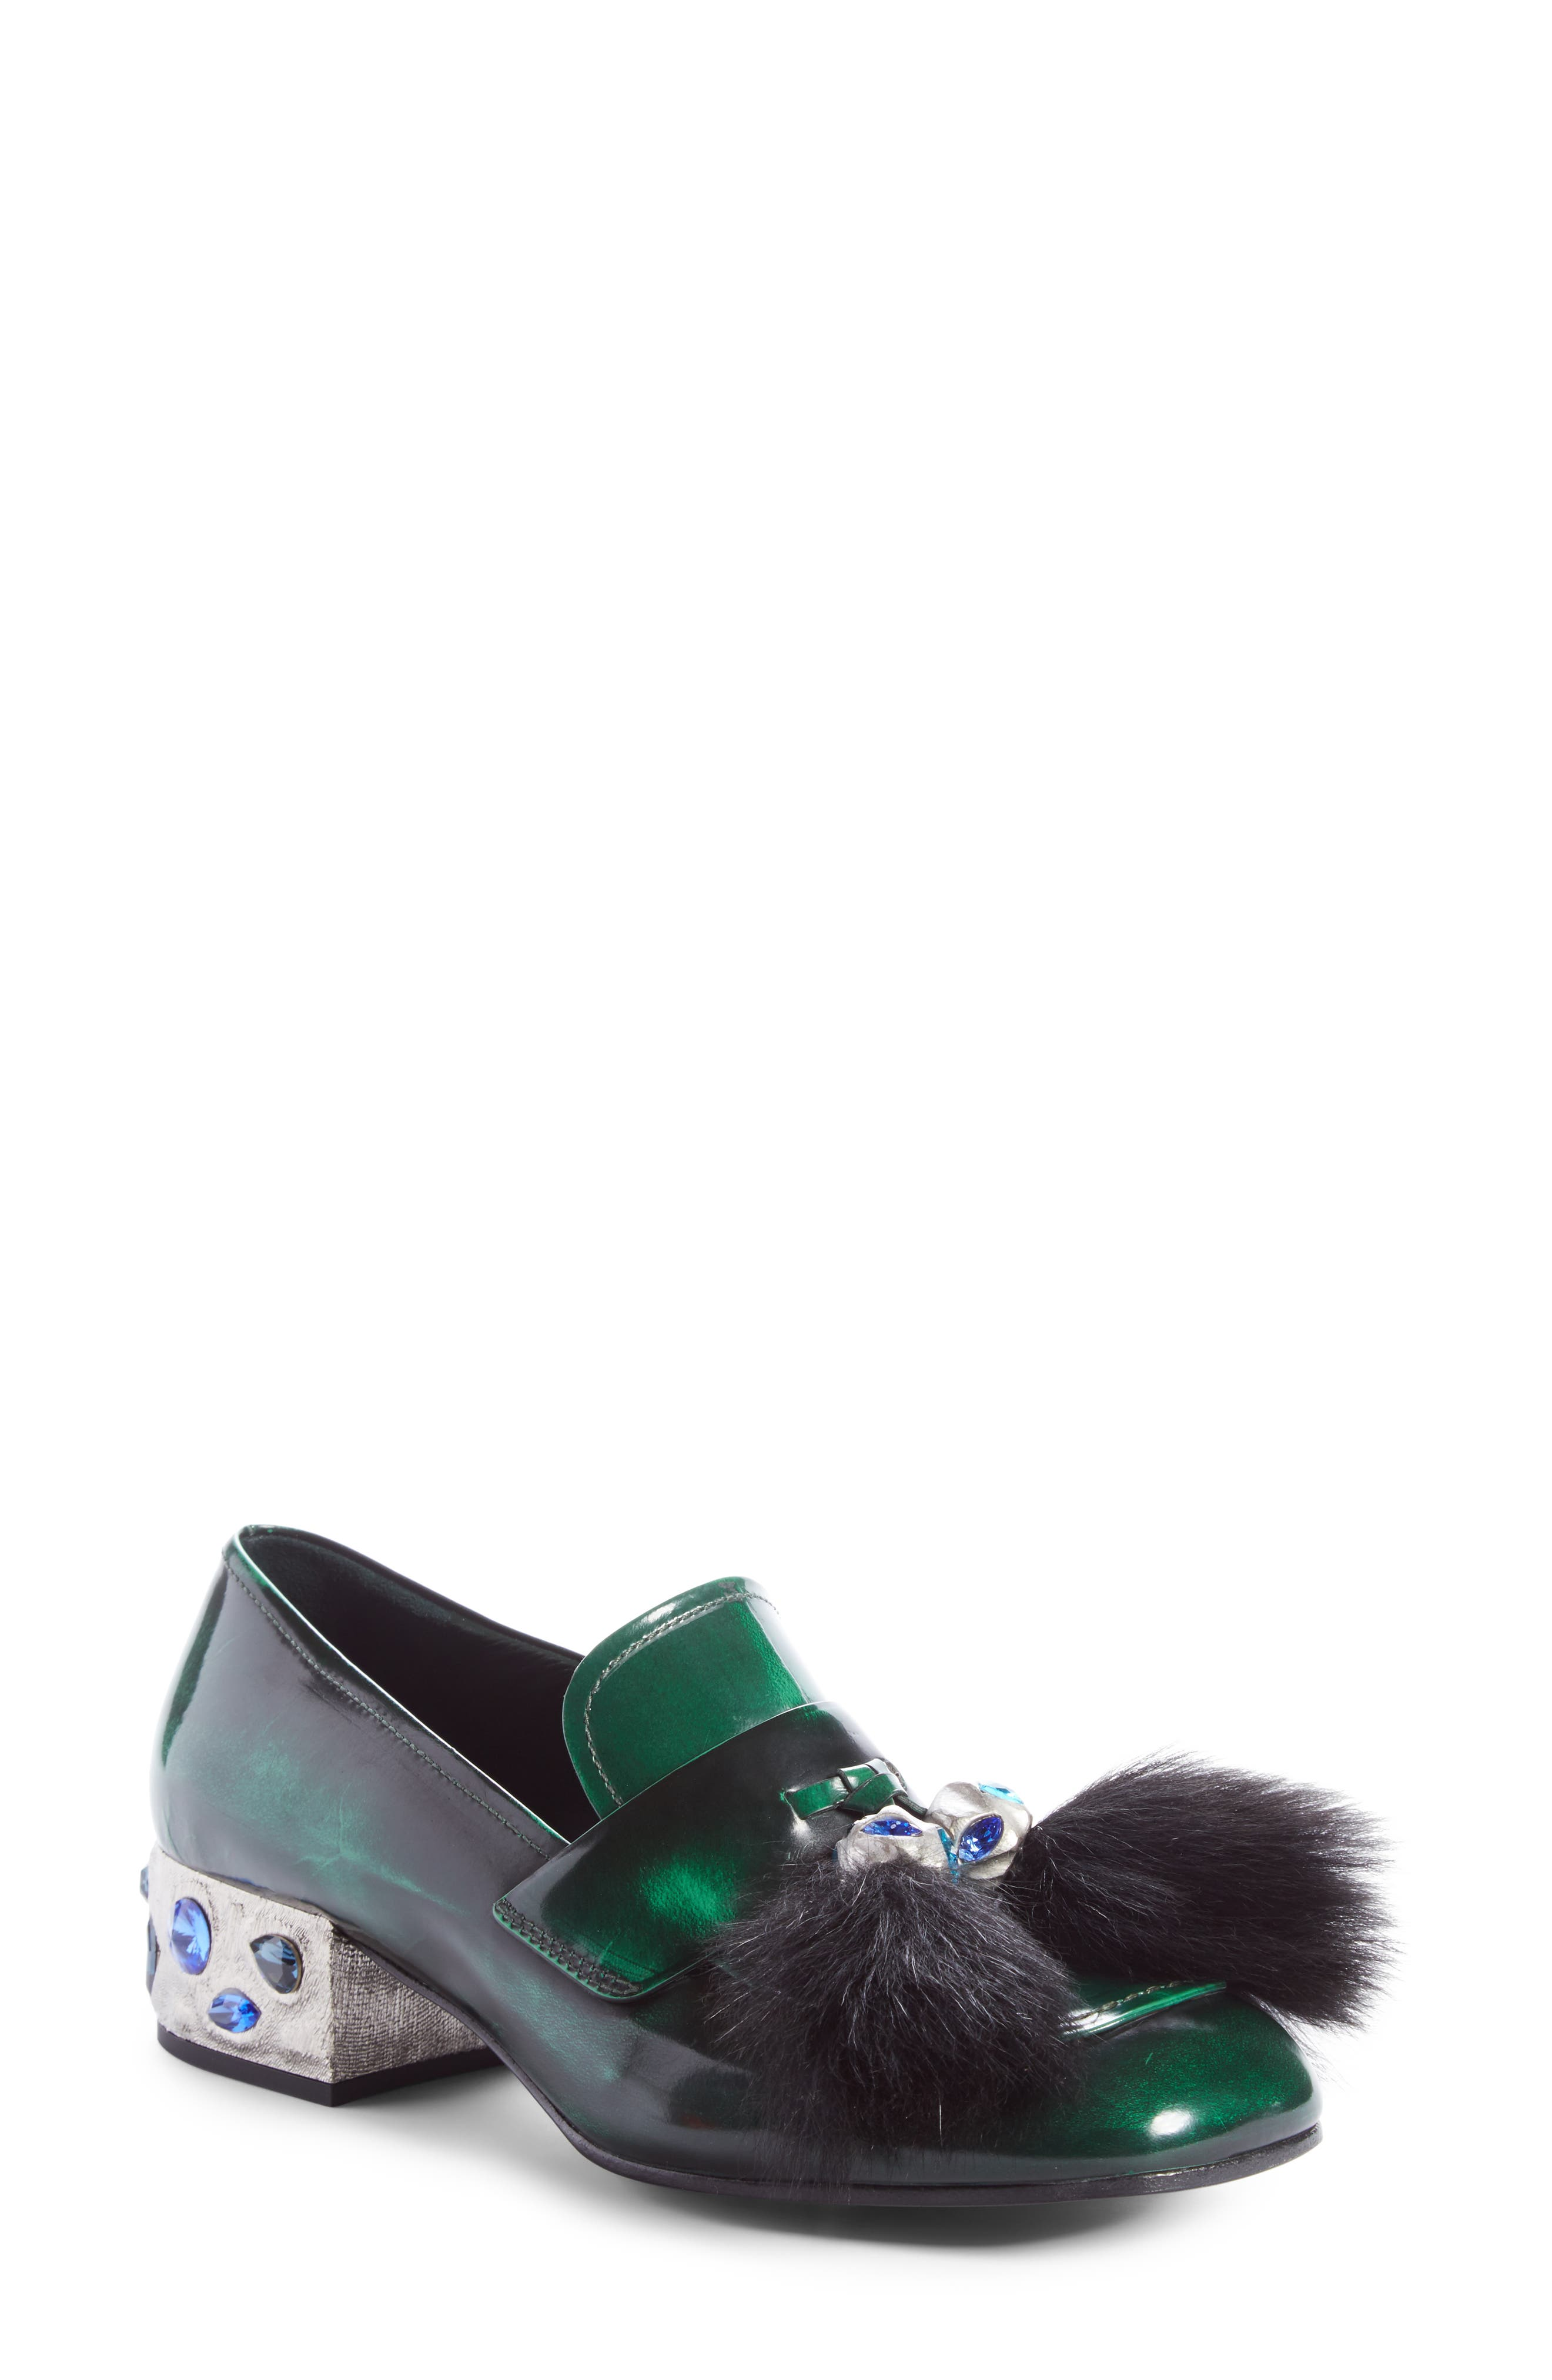 Alternate Image 1 Selected - Prada Genuine Shearling Tassel Loafer (Women)